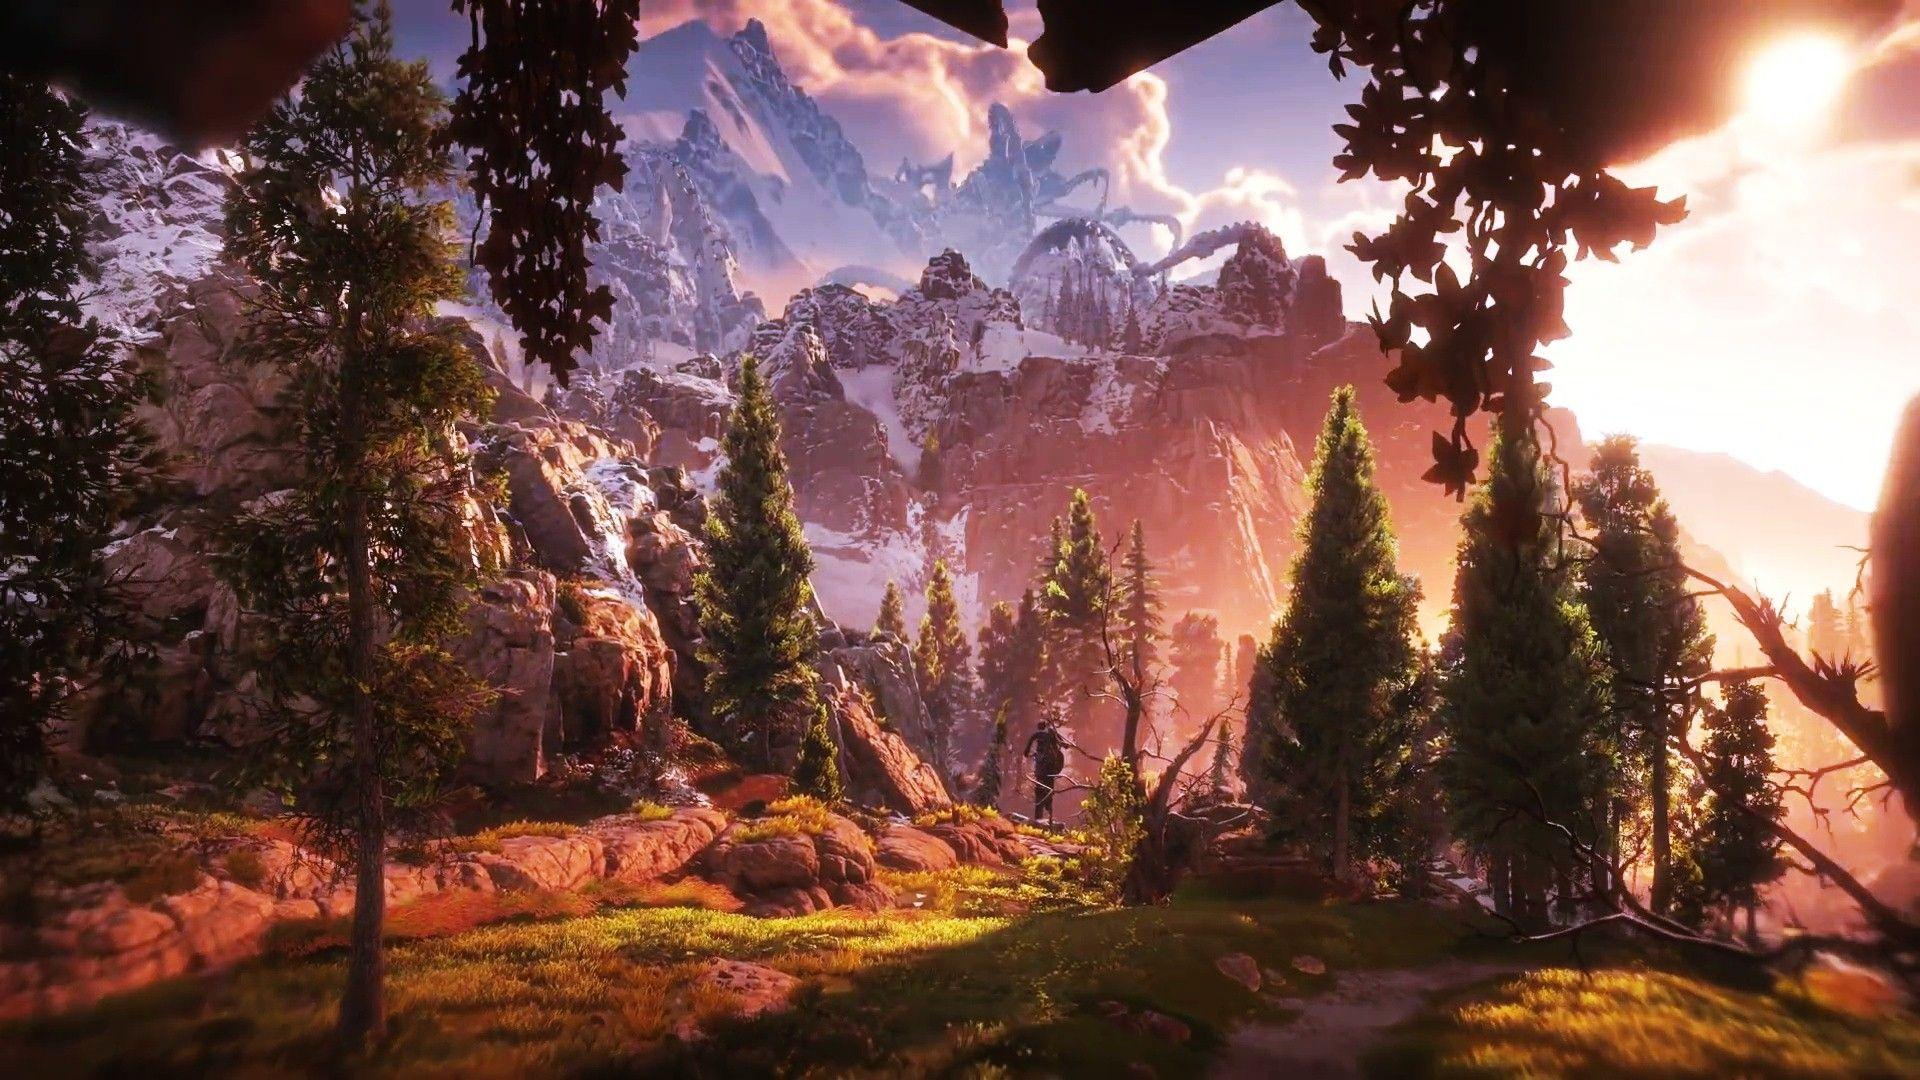 Video game backgrounds to use in your Zoom calls